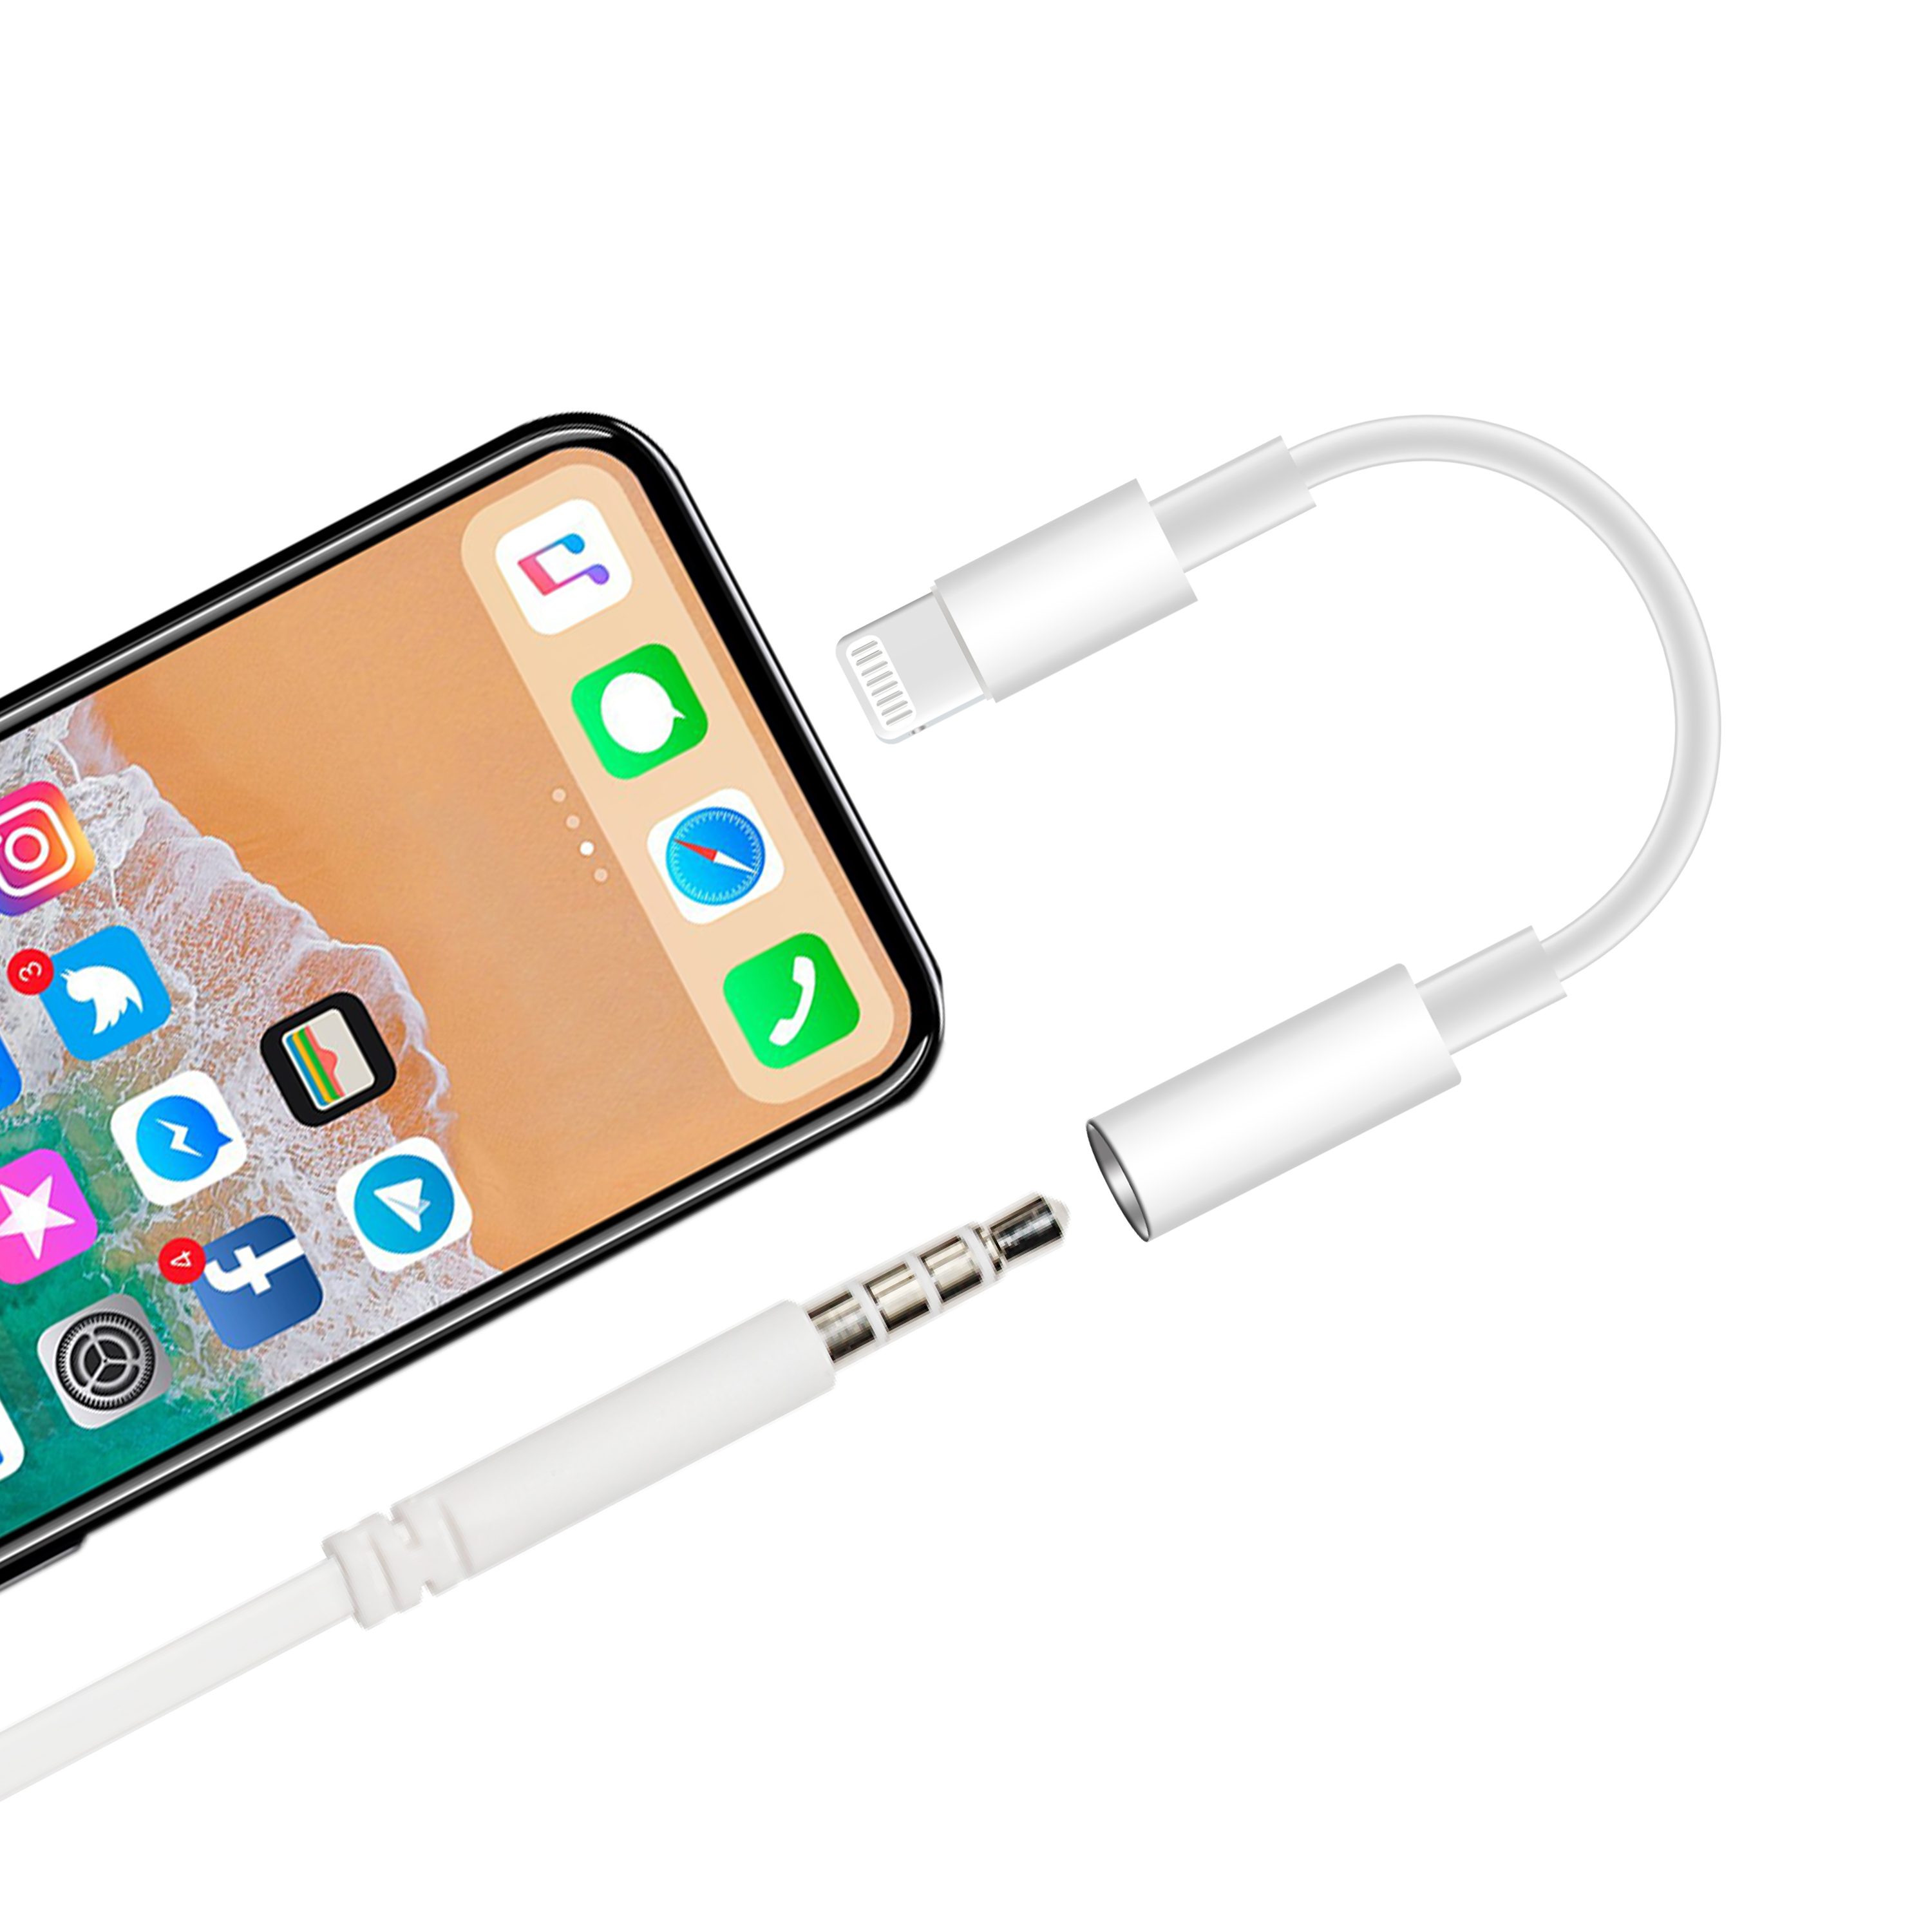 White aux audio cable for iPhone X/Xr/Xs to 3.5mm Headphone jack adapter stereo converter for 8pin Apple devices